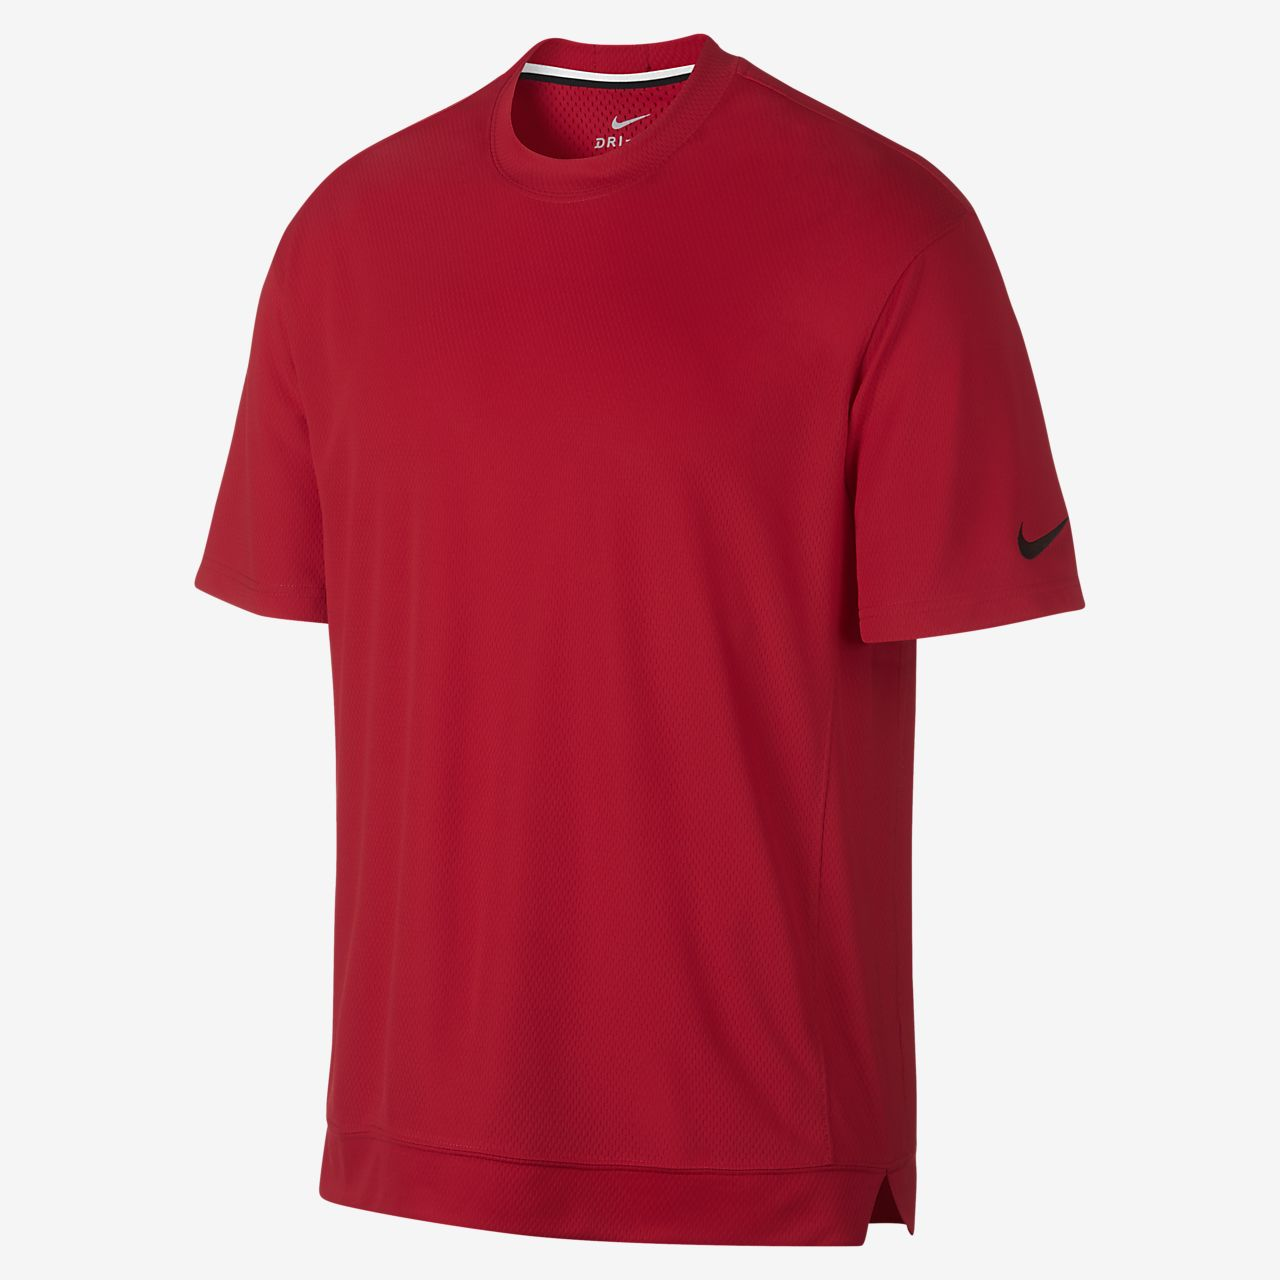 Nike Dri-FIT Classic Men's Short-Sleeve Basketball Top